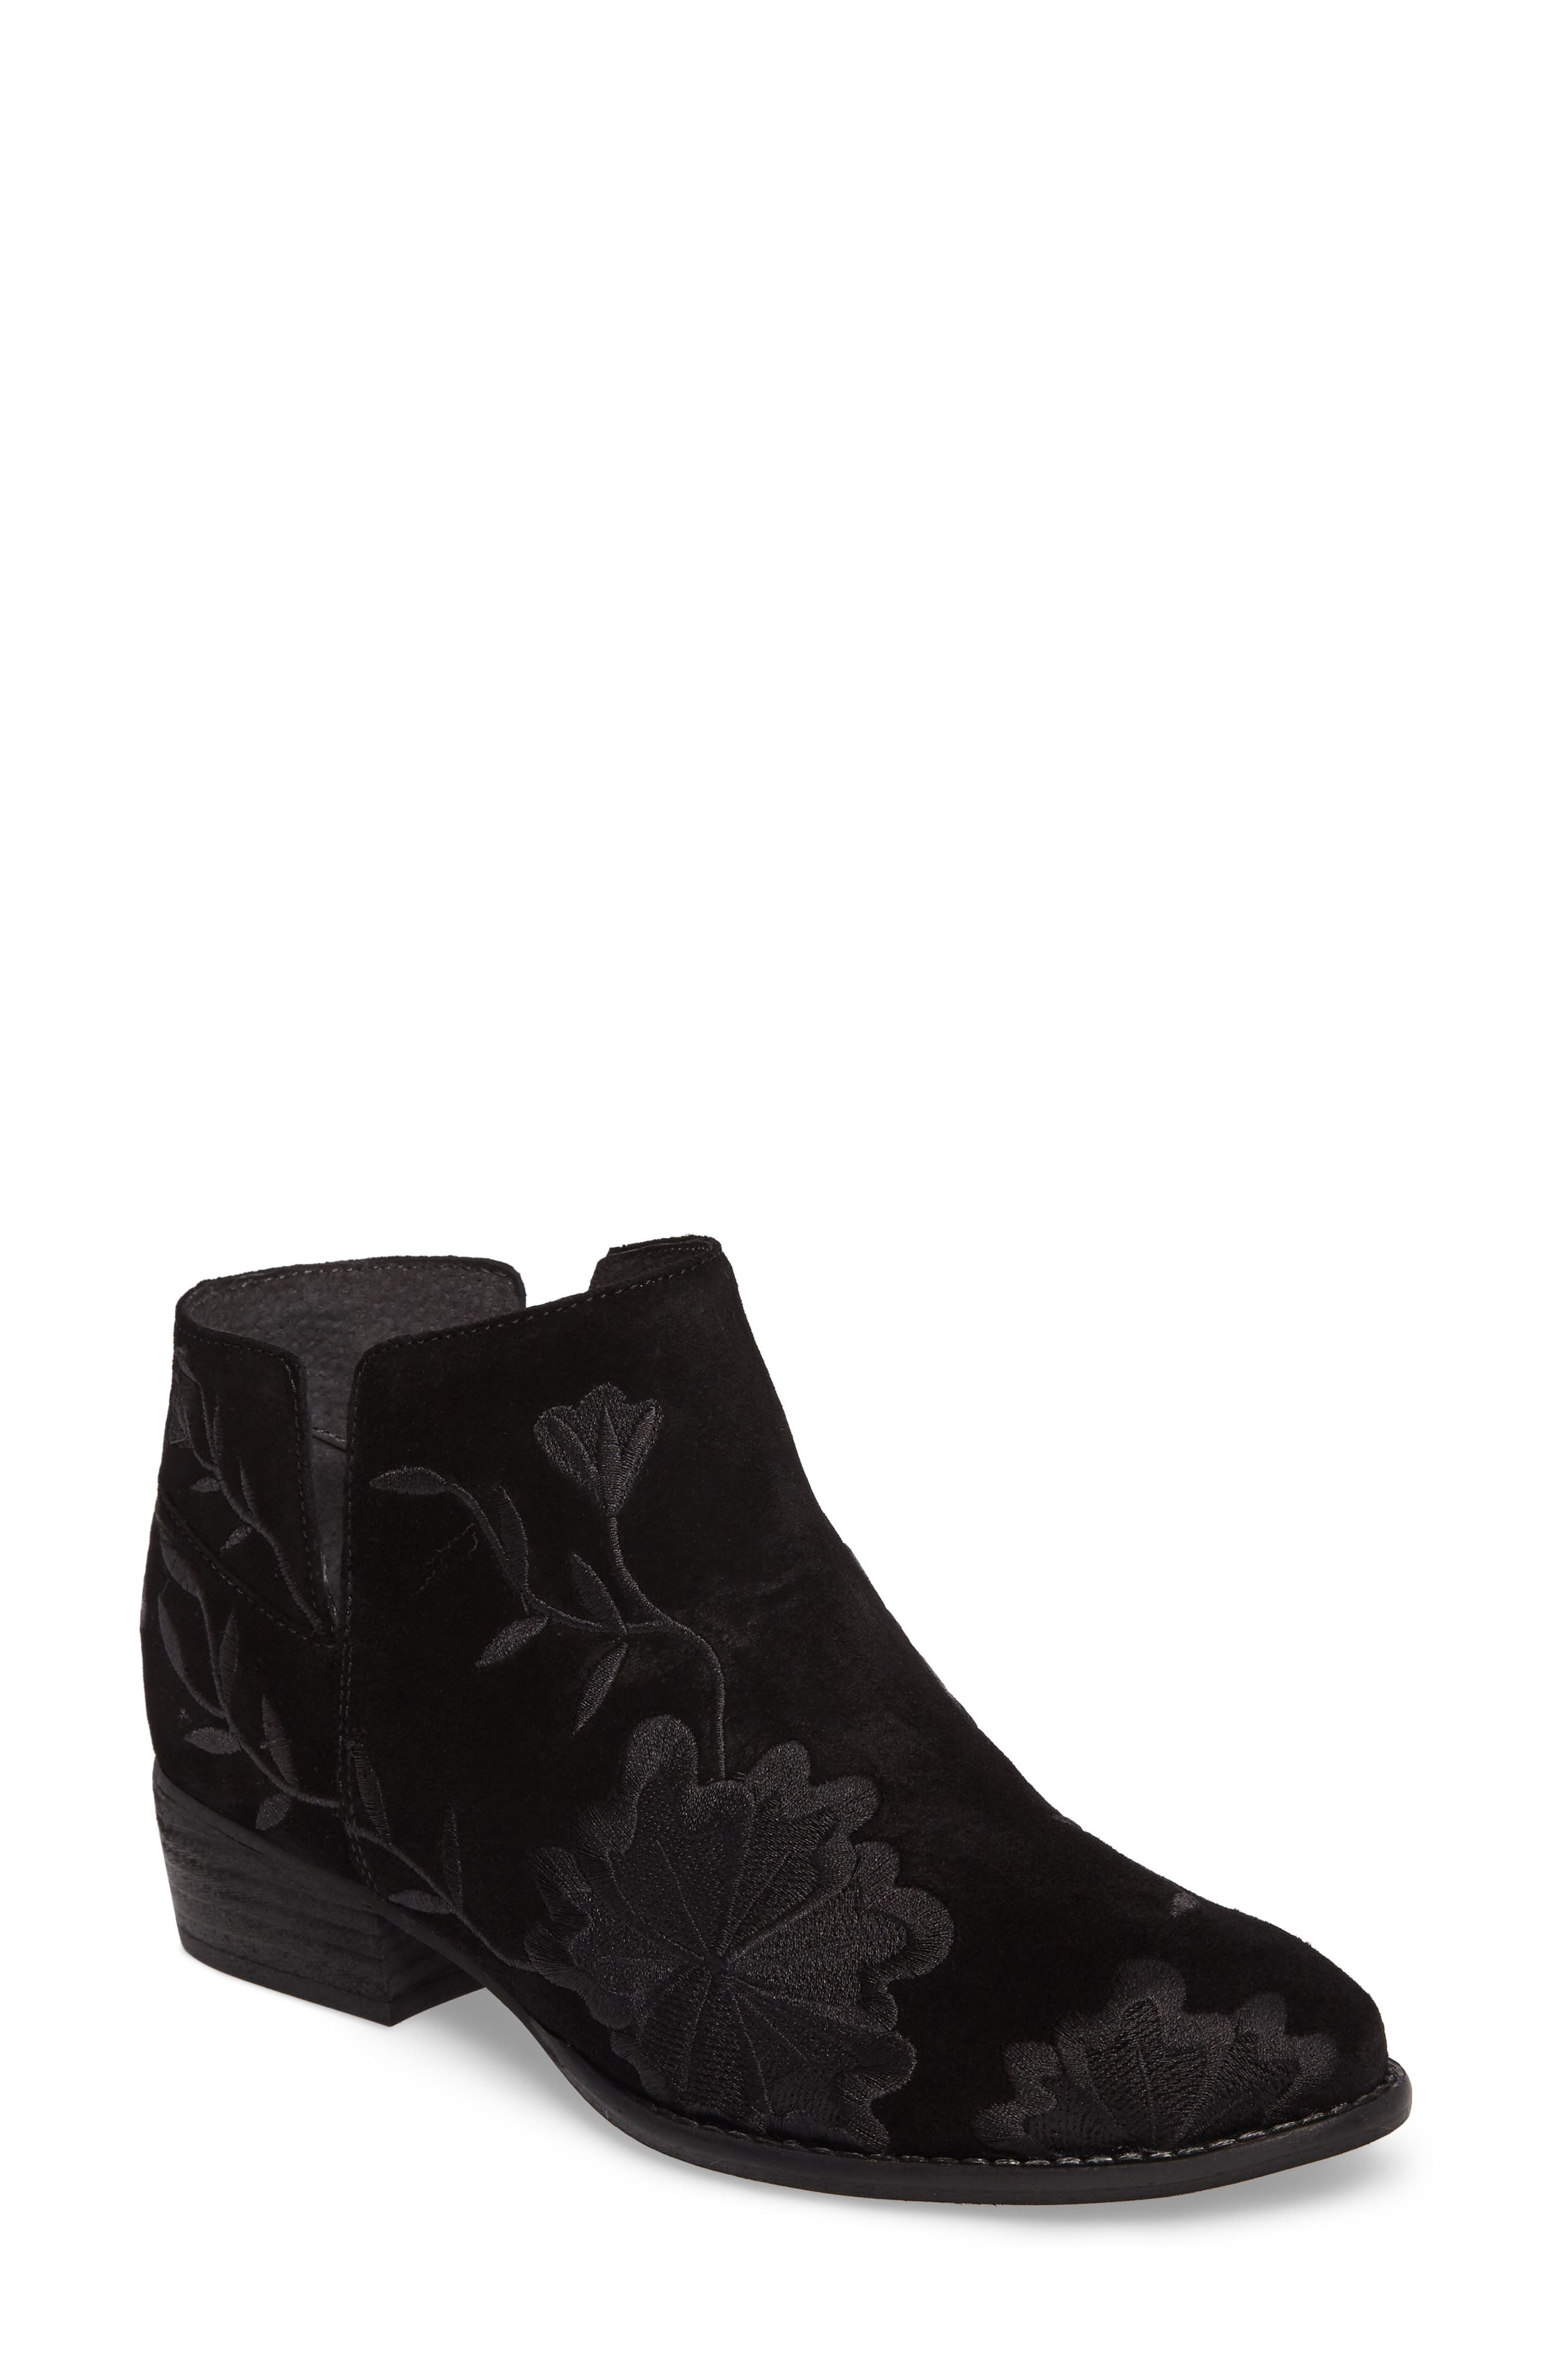 Lantern Embroidered Short Bootie,                             Main thumbnail 1, color,                             001